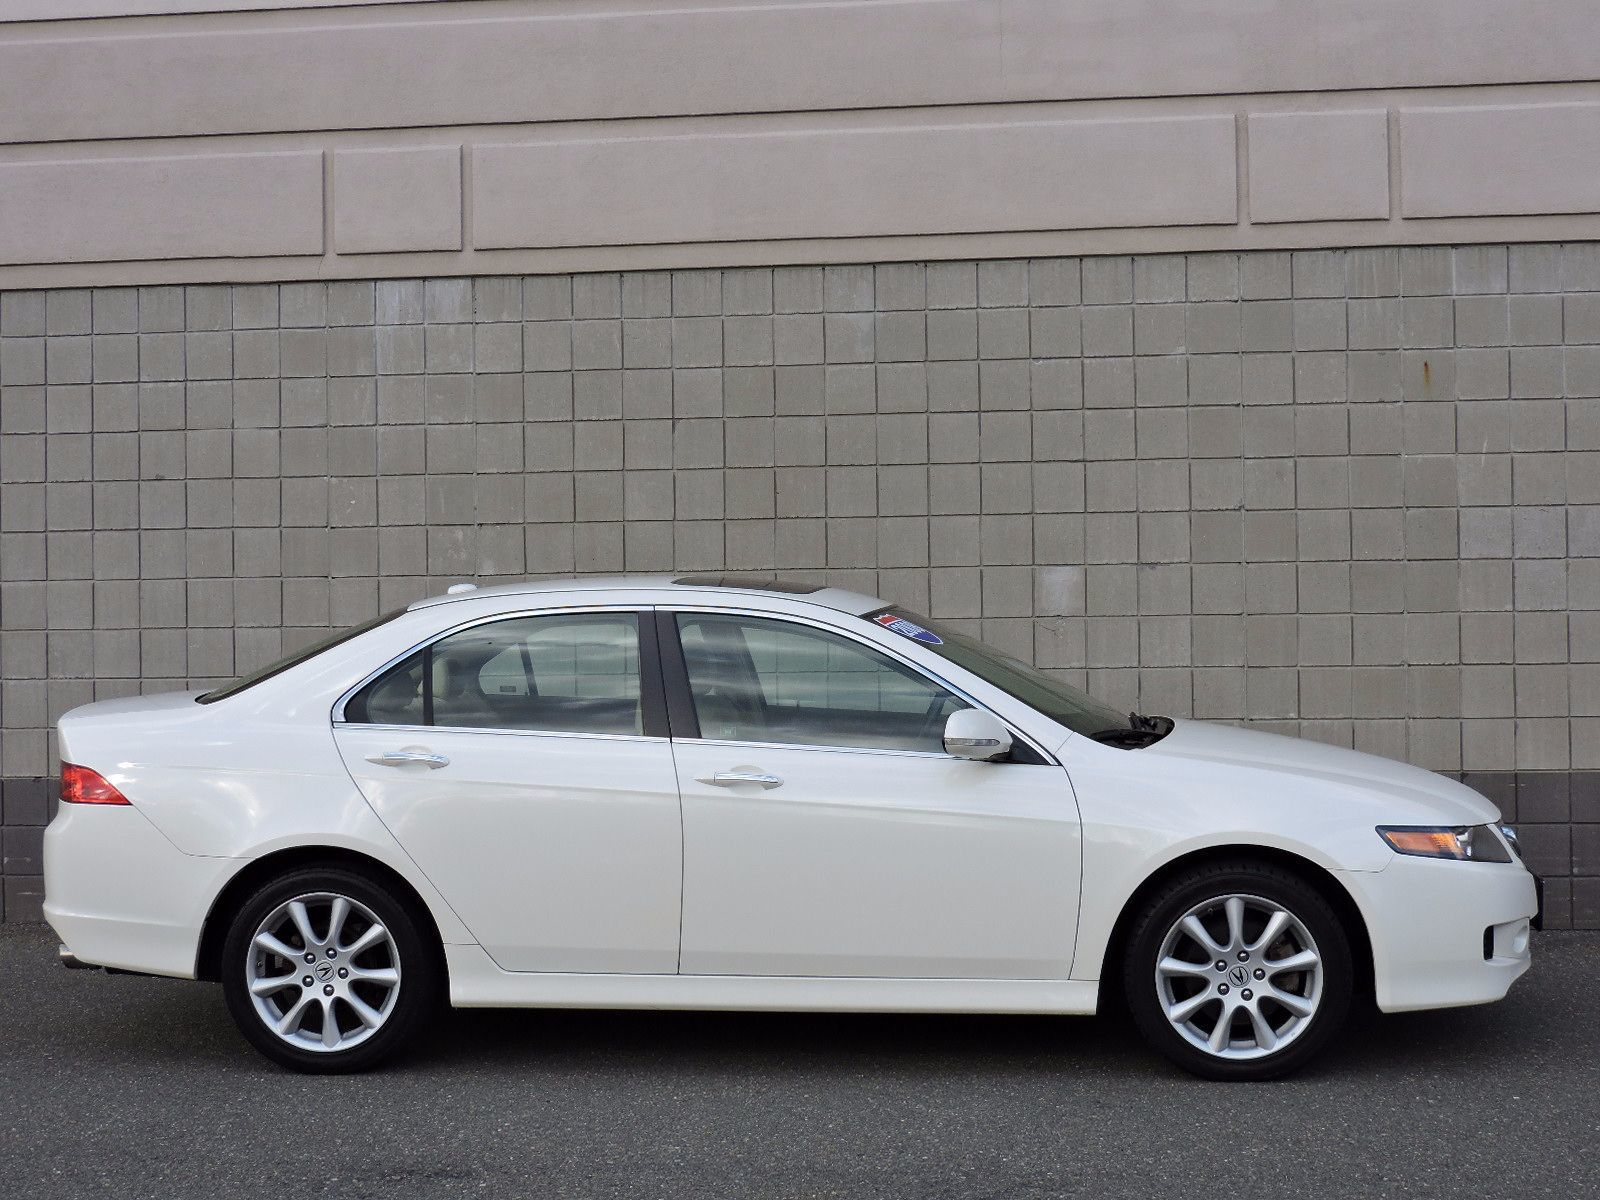 used 2008 acura tsx e350 luxury at auto house usa saugus. Black Bedroom Furniture Sets. Home Design Ideas